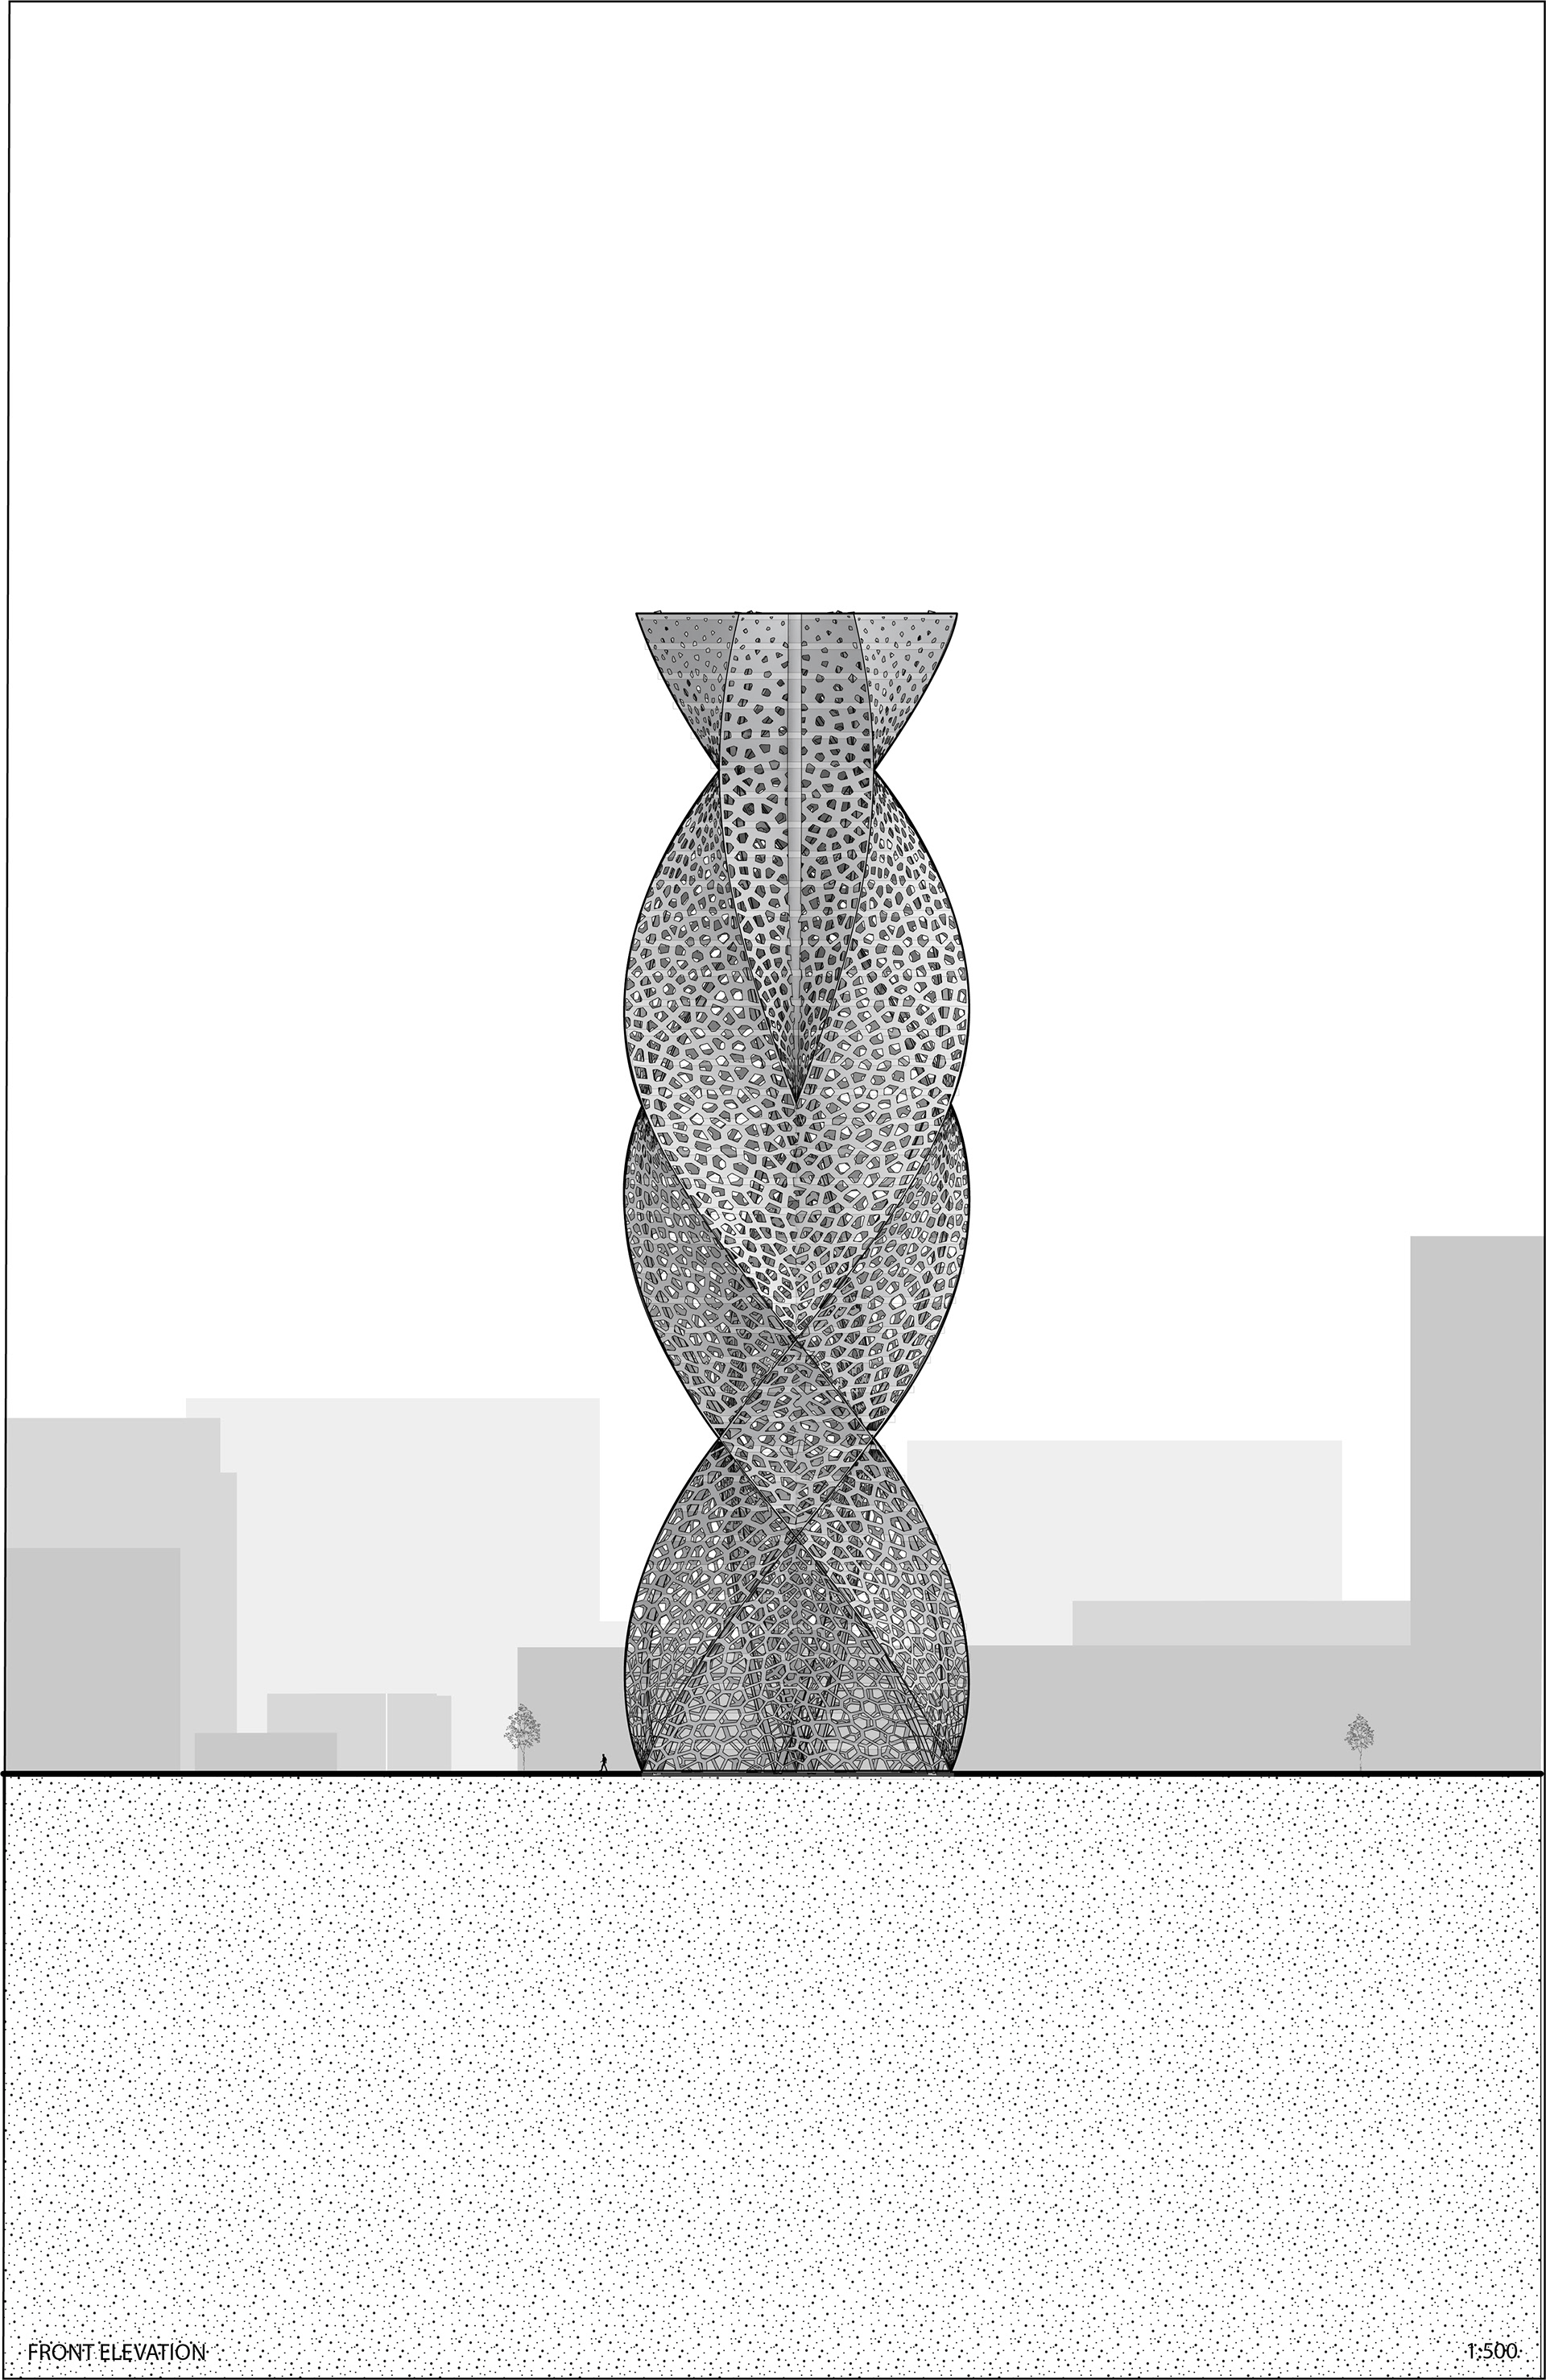 Zoona Aamir - DOUBLE HELIX TOWER